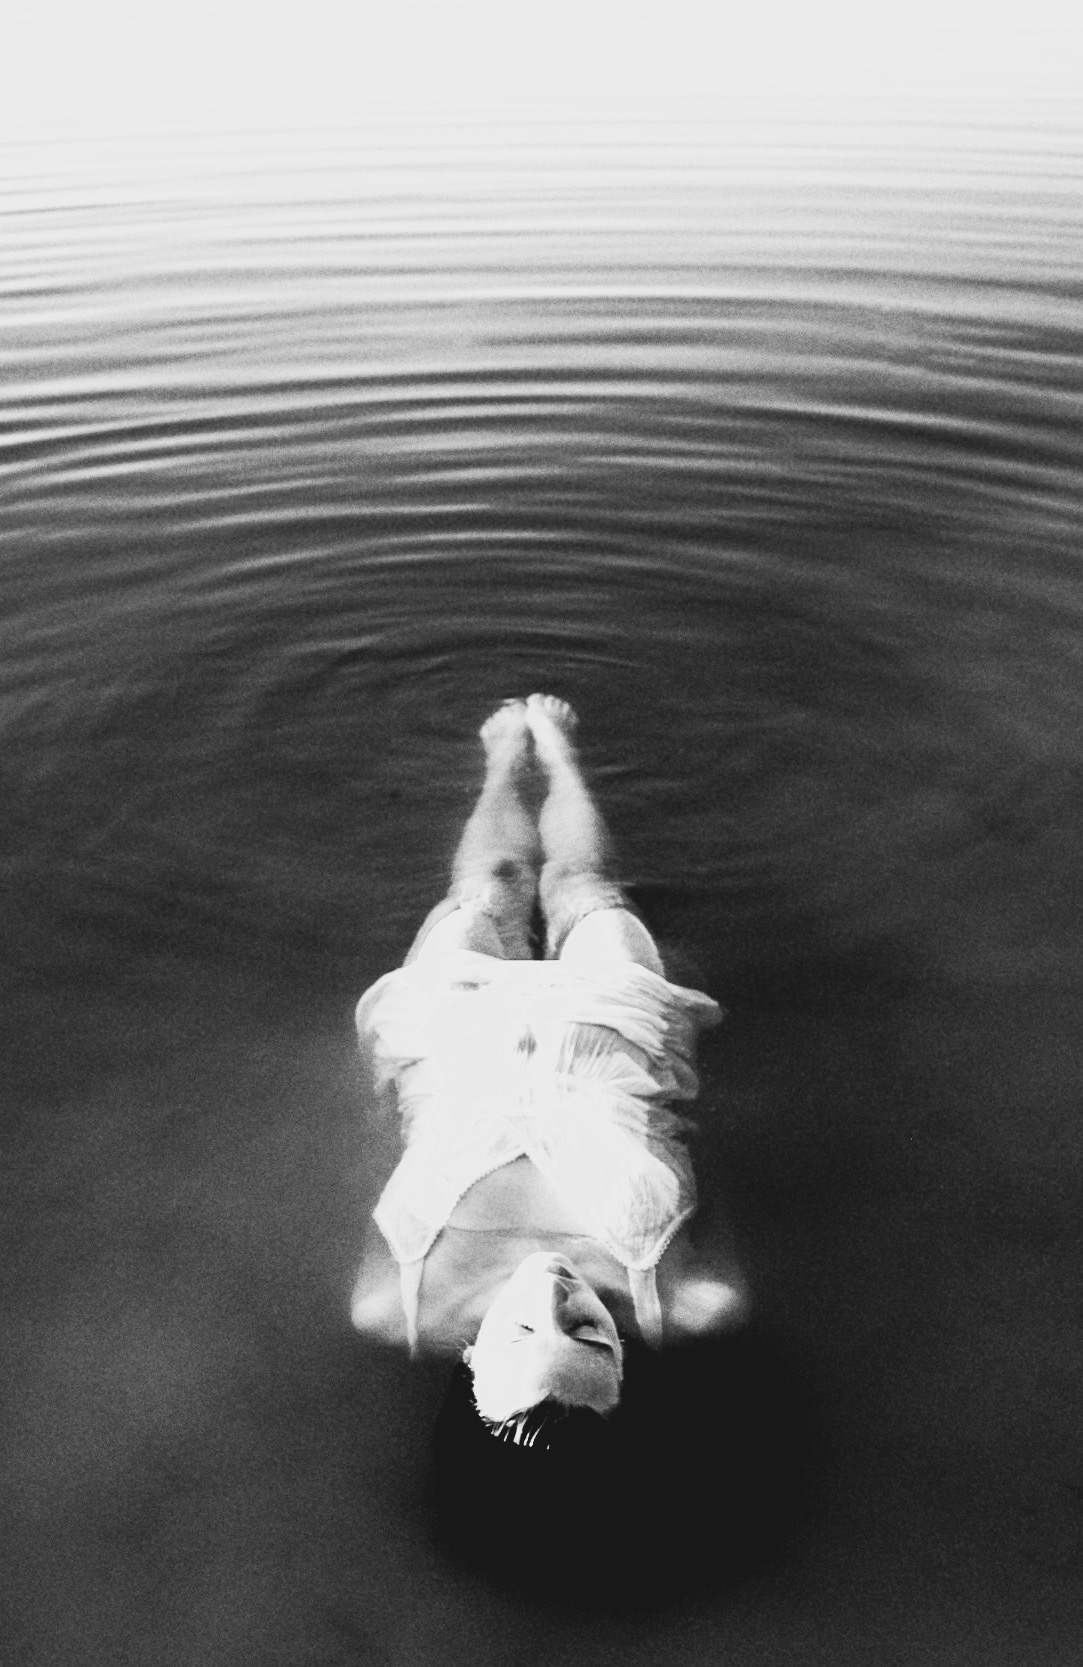 finding finding freedom: woman floating down a river